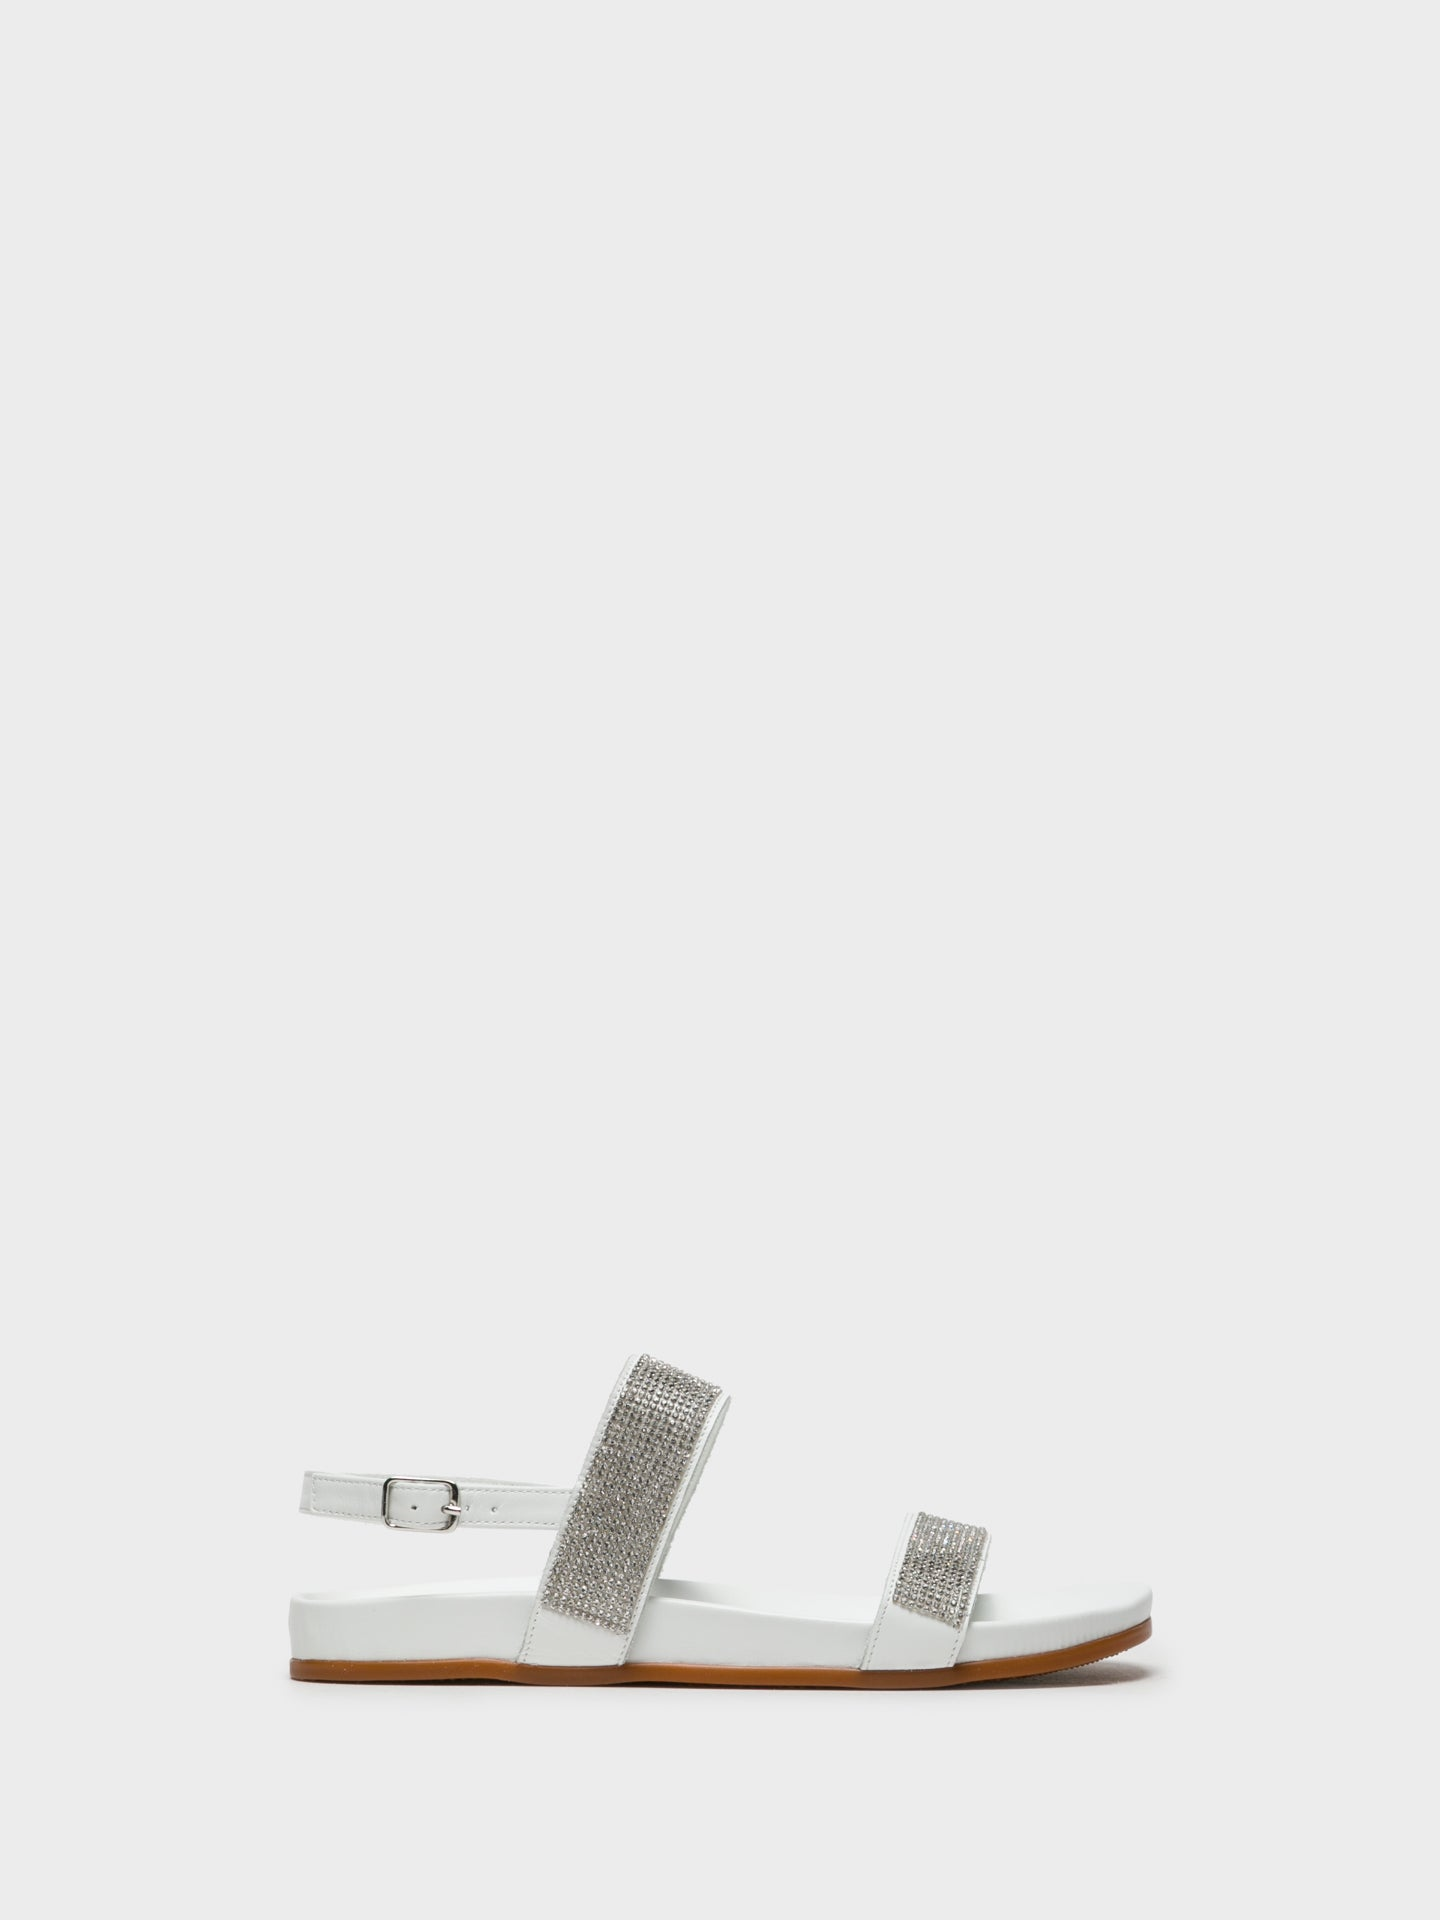 Foreva White Sling-Back Sandals